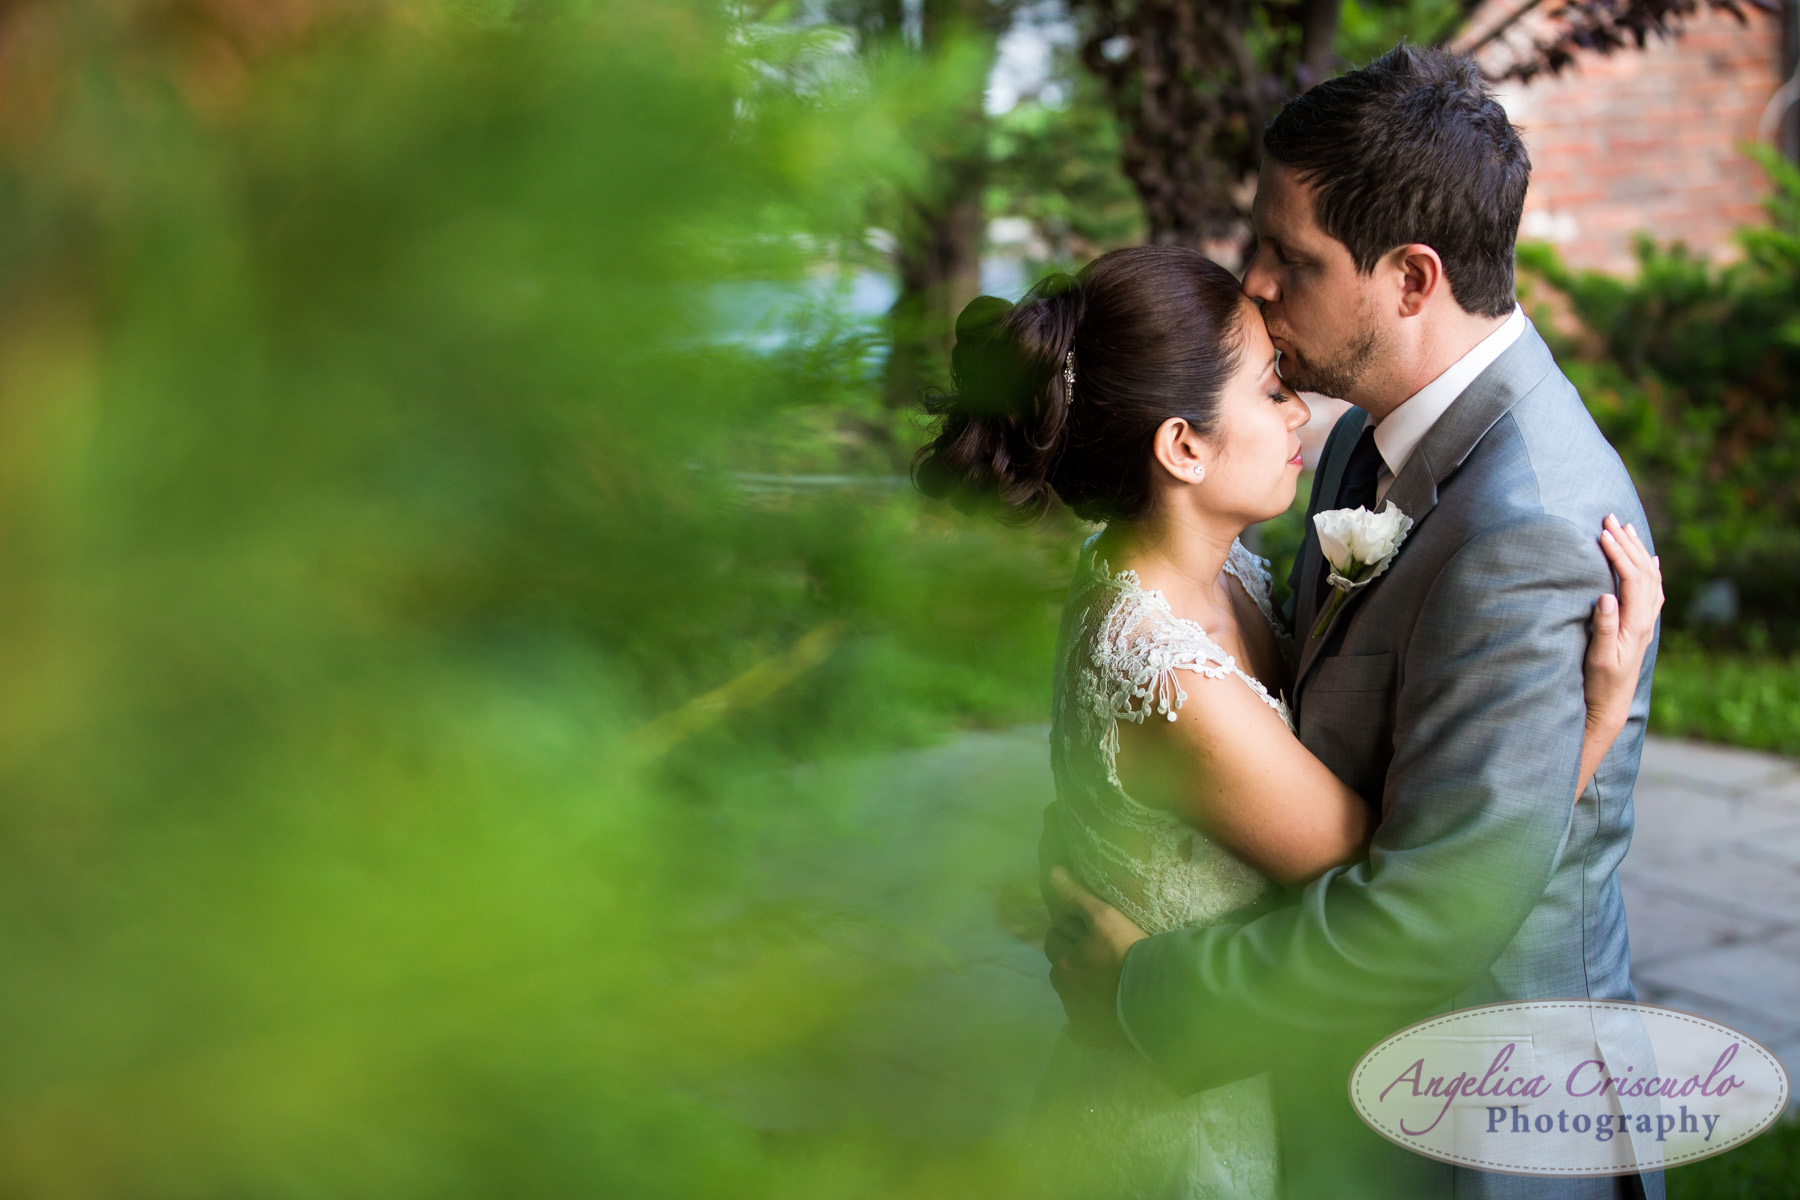 Bride and groom wedding photo ideas New York Fox Hollow Catering